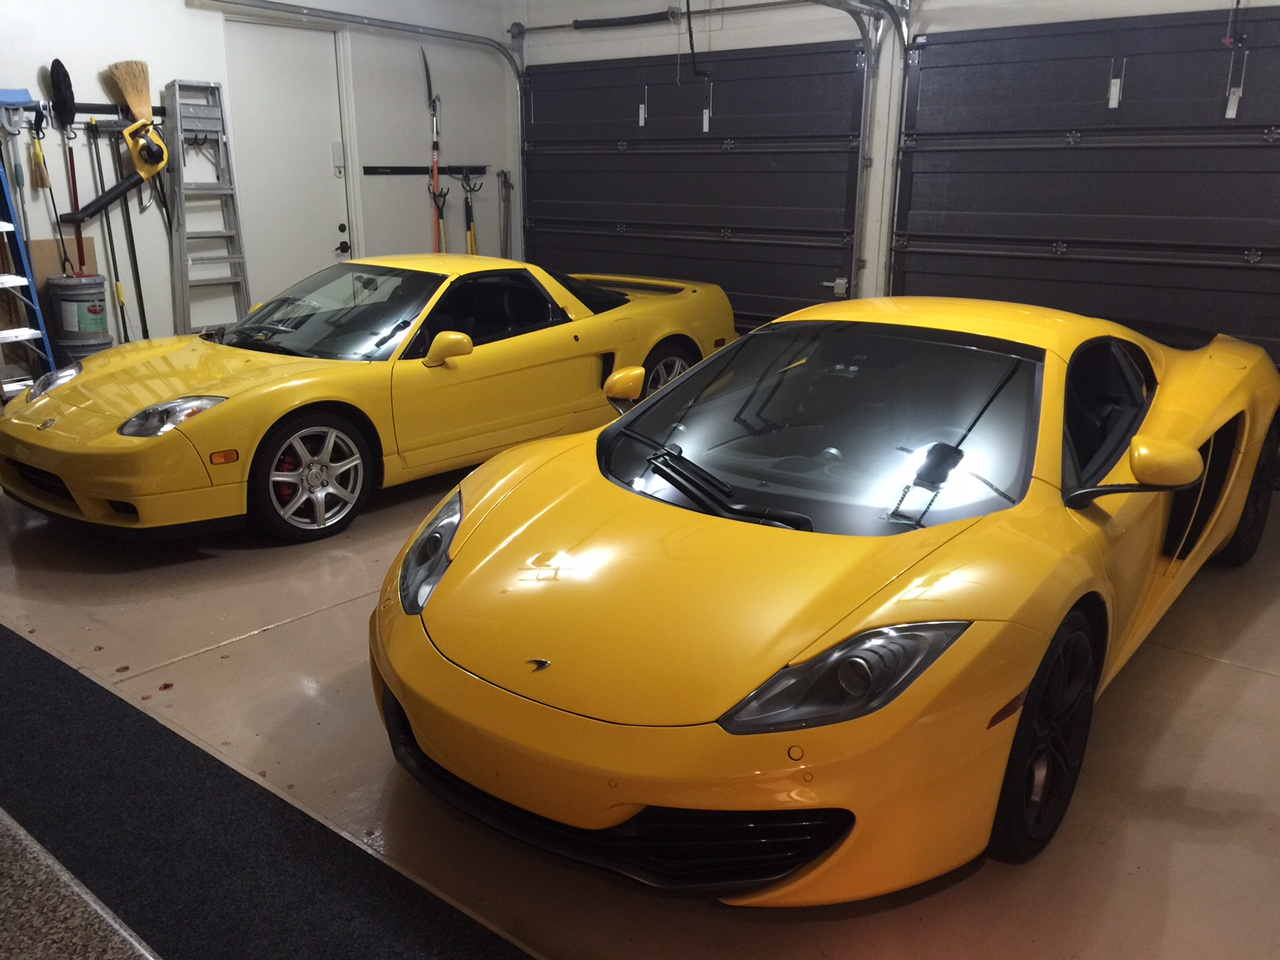 2 cars in garage.